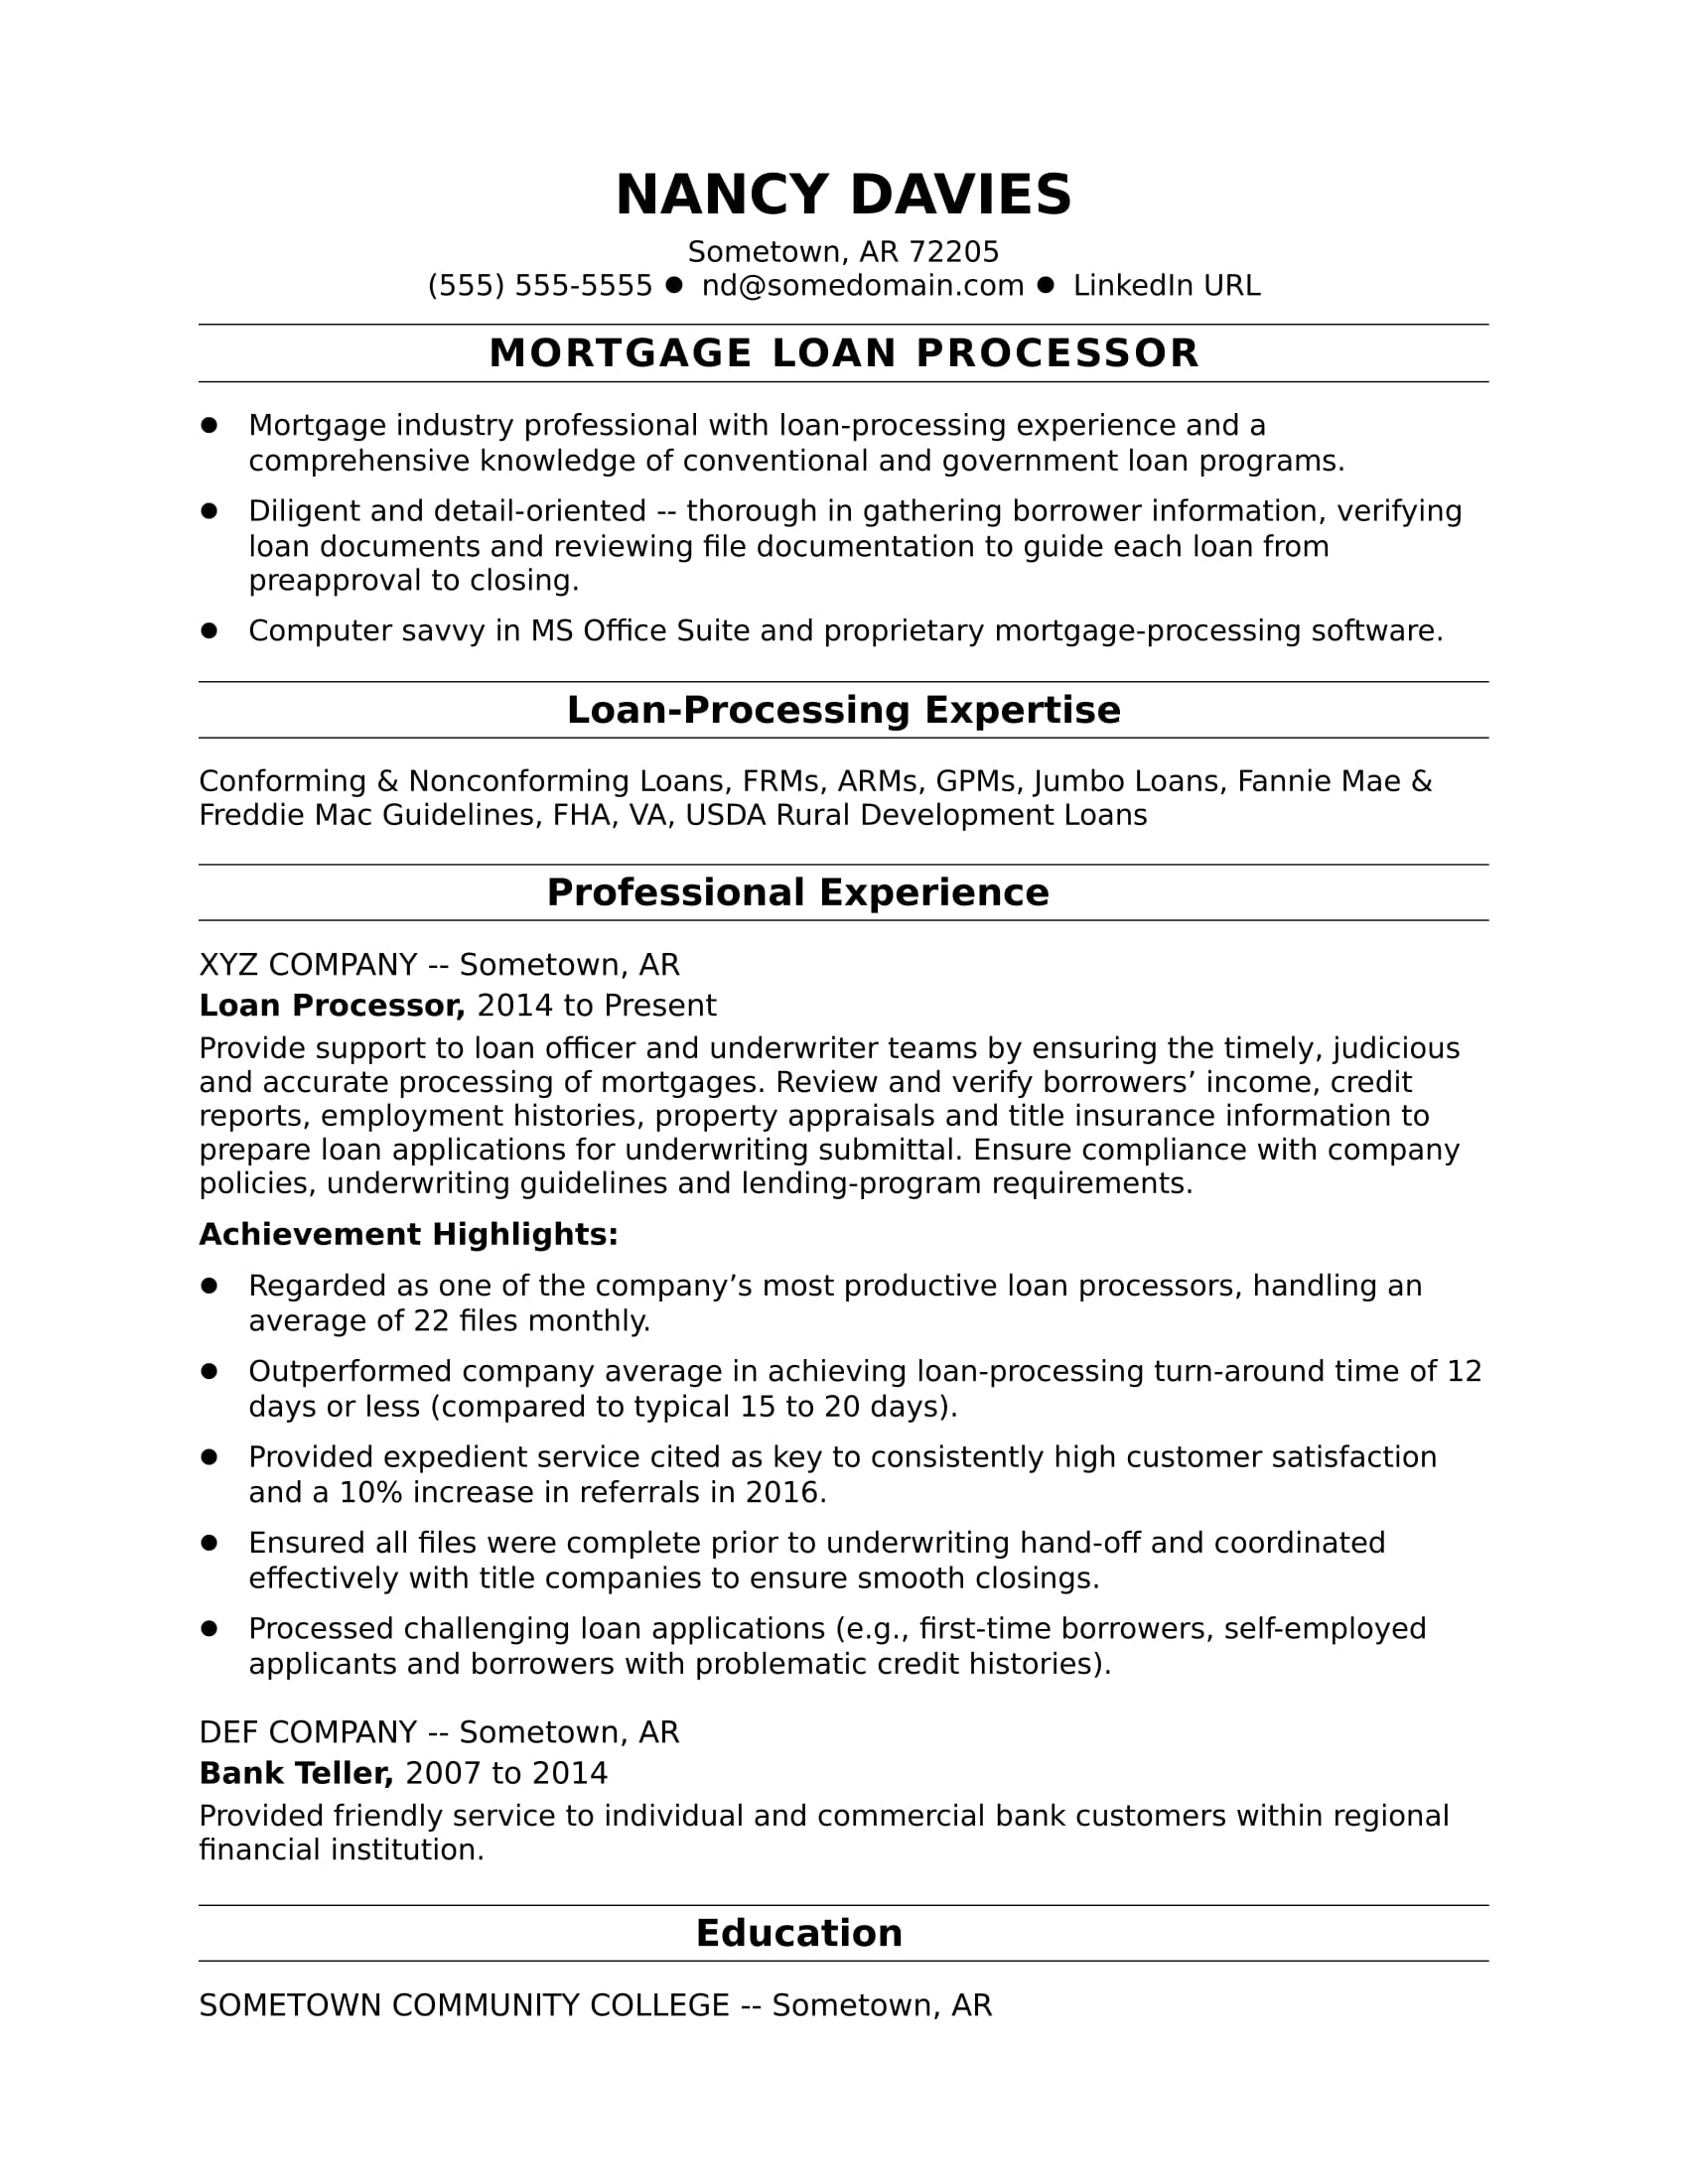 Mortgage loan processor resume sample monster sample resume for a mortgage loan processor yelopaper Images